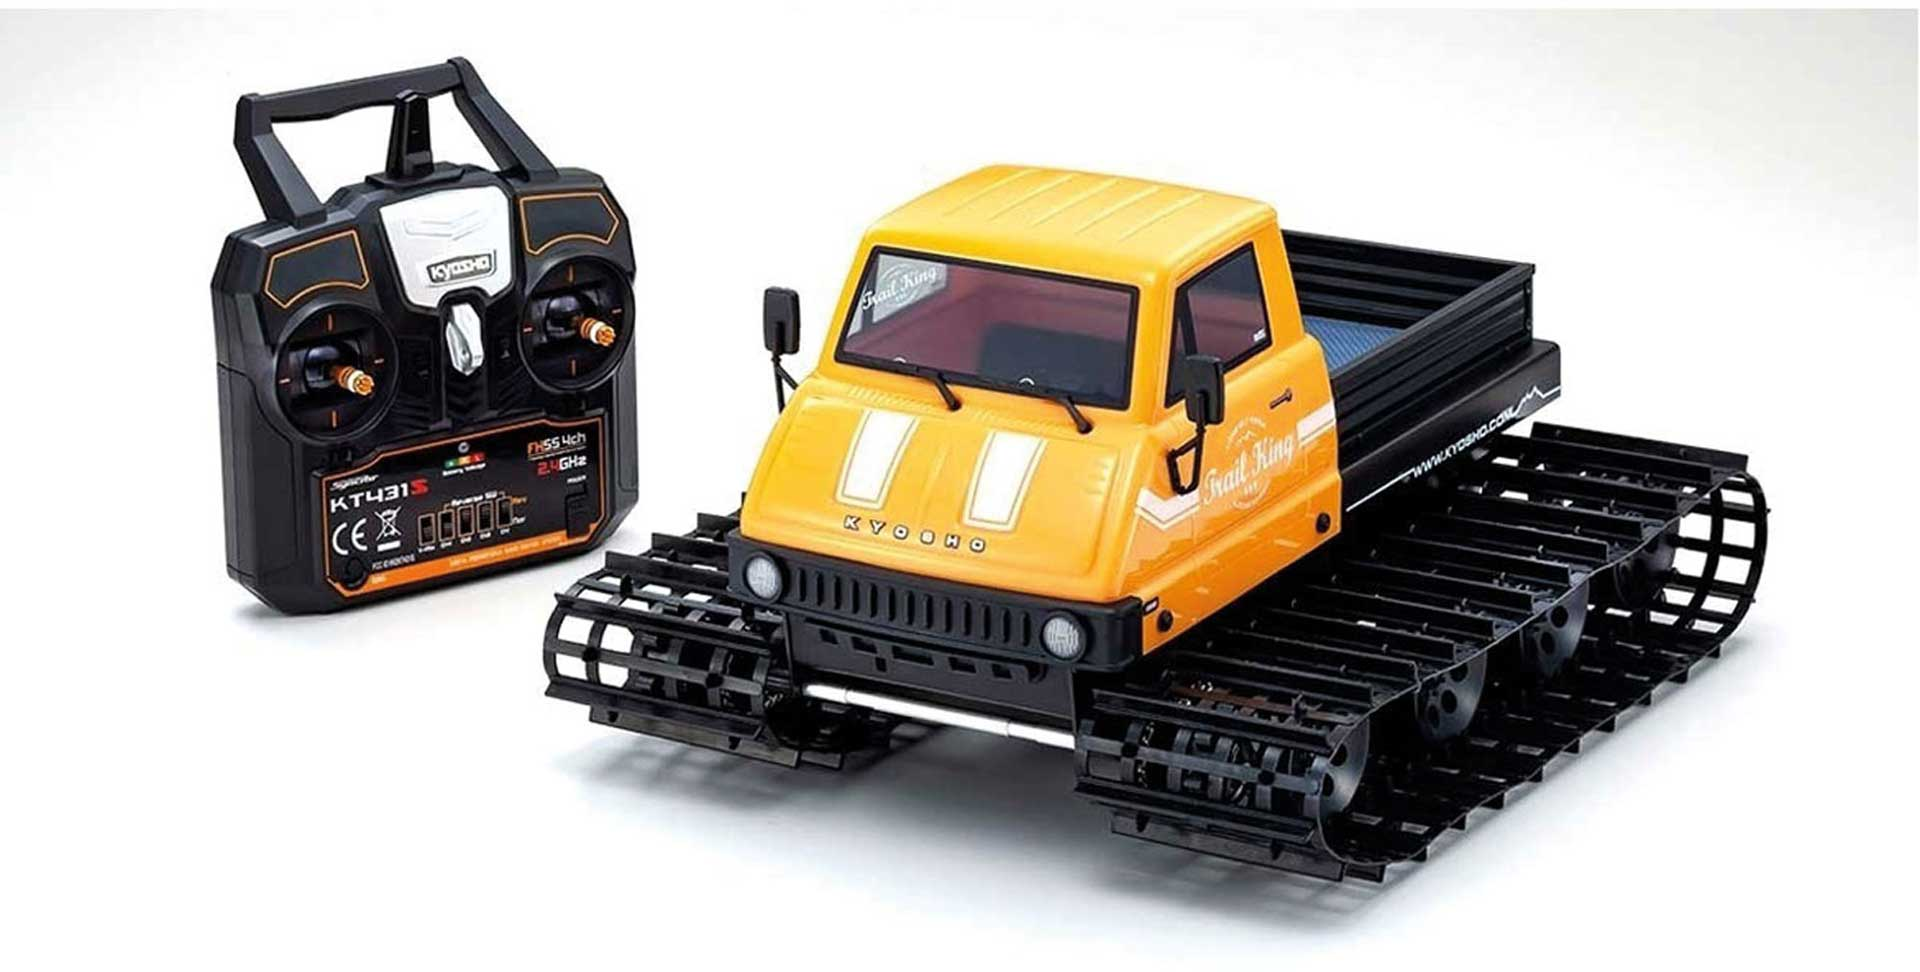 KYOSHO TRAIL KING 1:12 READYSET EP TRACKED VEHICLE (KT431S) - T1 YELLOW